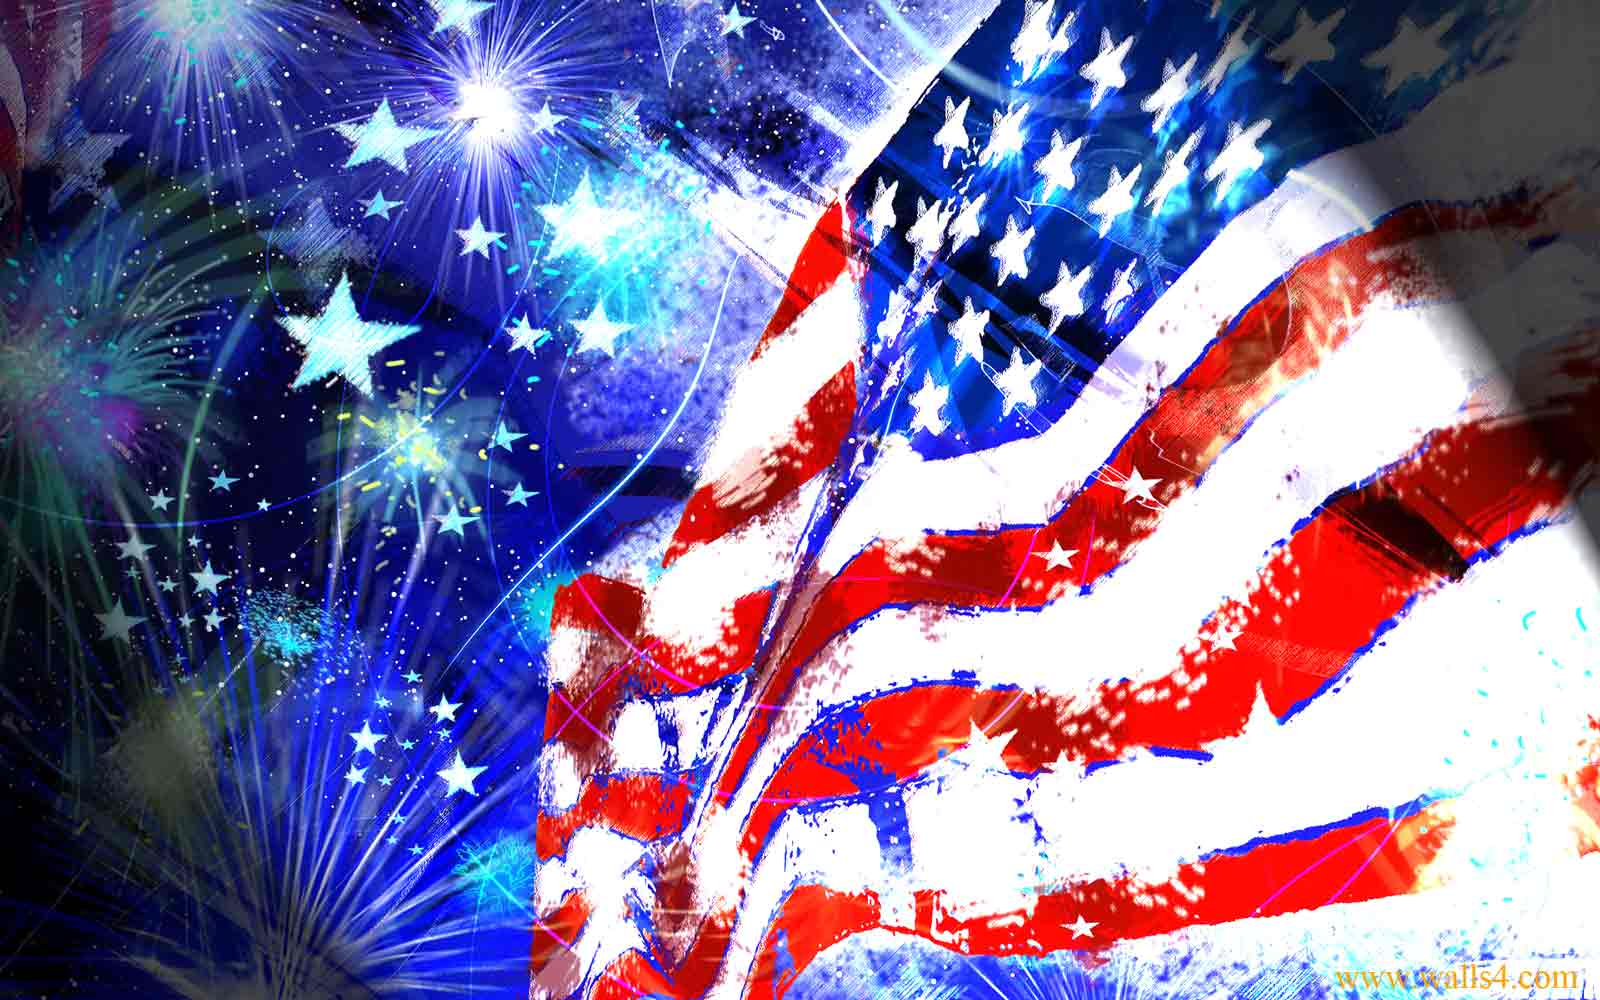 Free Wallpapers - Flag Independence Day USA wallpaper